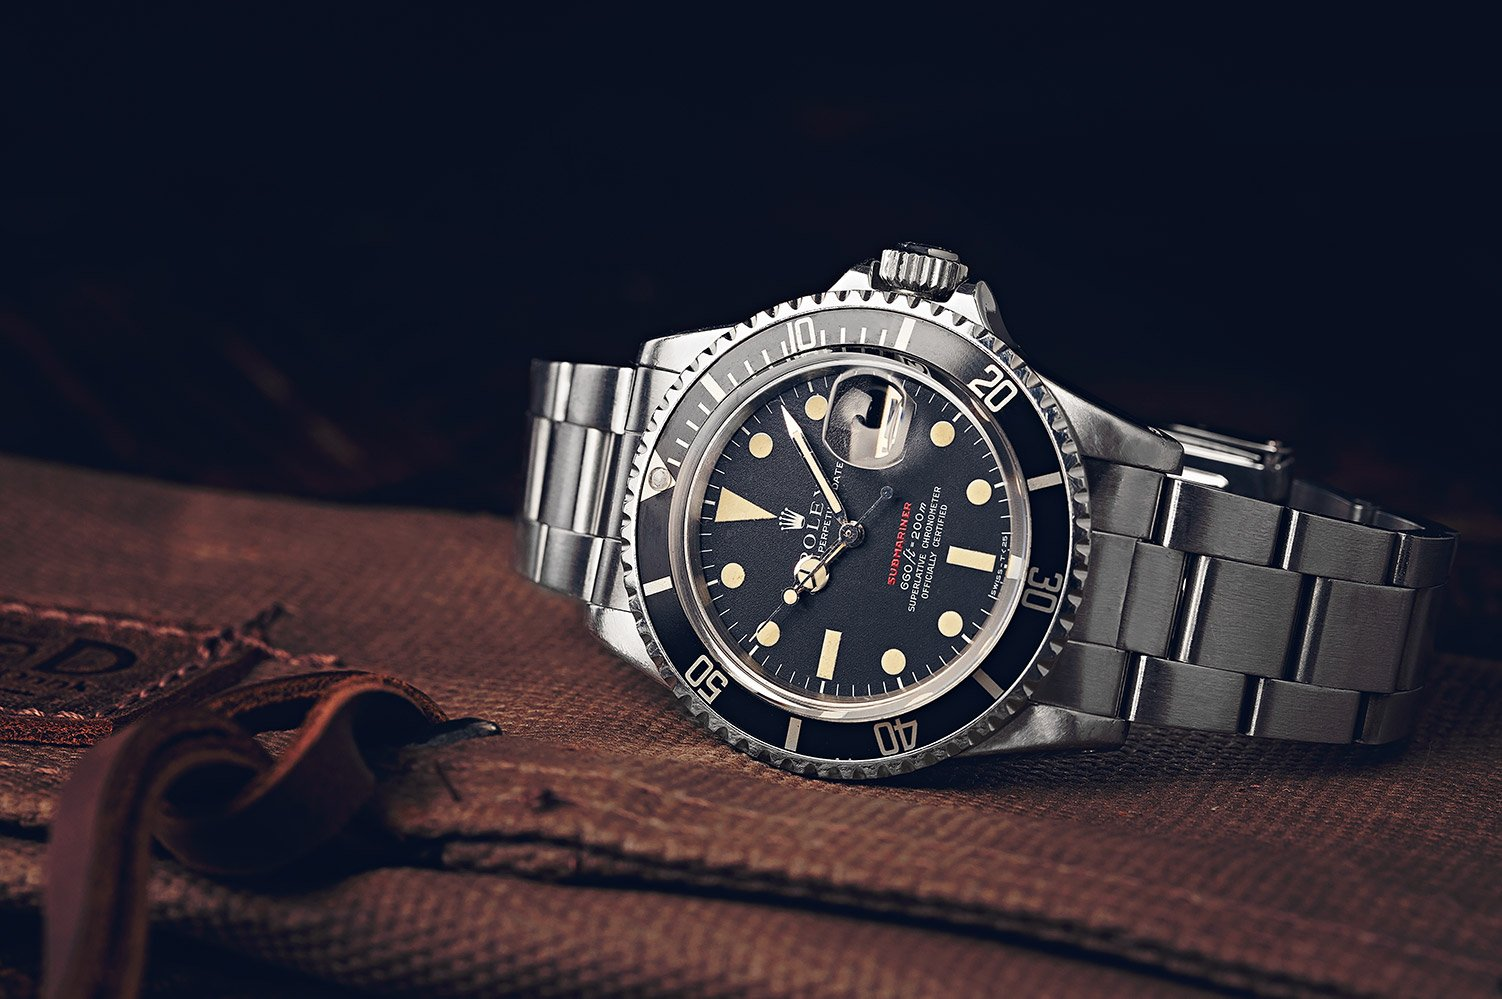 Vintage Rolex Red Submariner dive watch